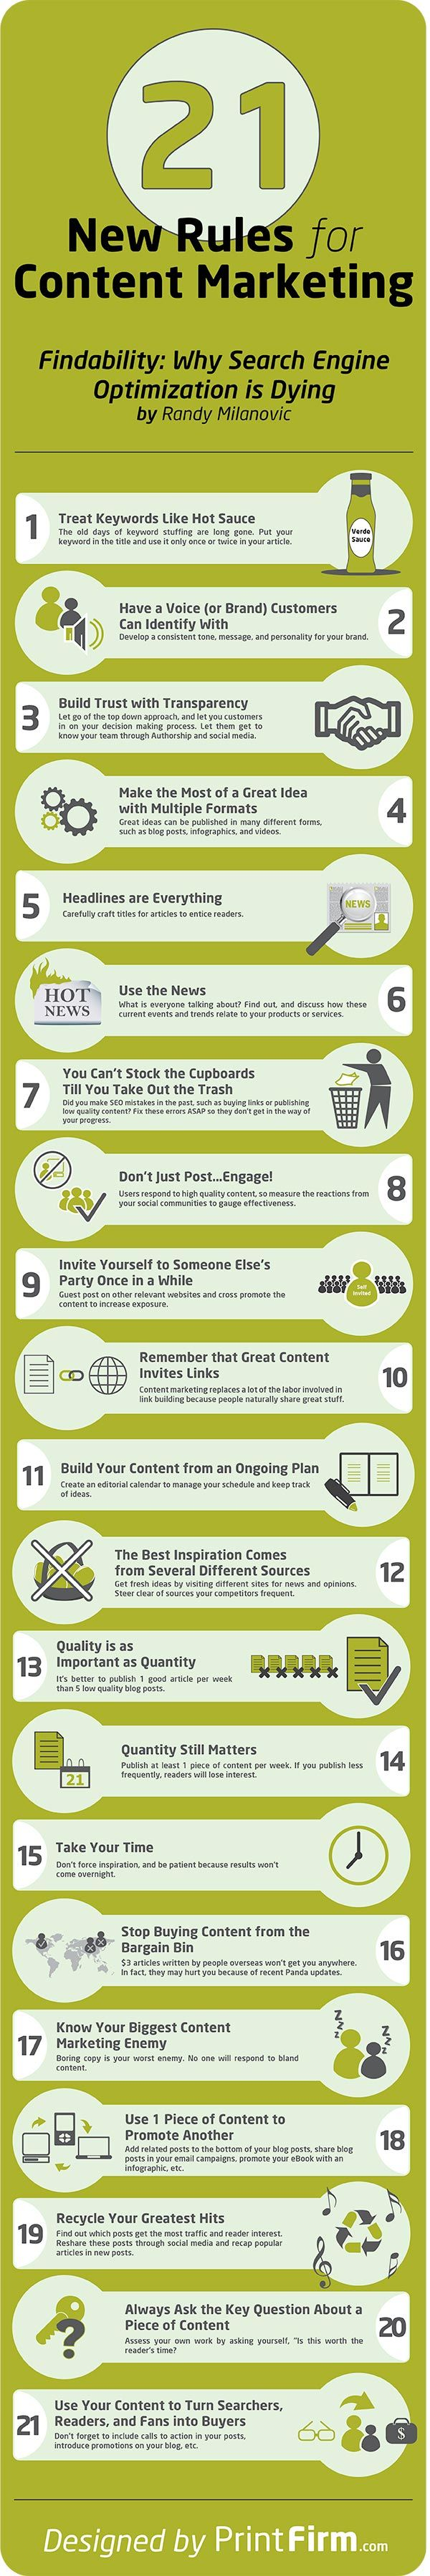 Rules of Content Marketing. #Content #Marketing #SocialMedia #Infographic